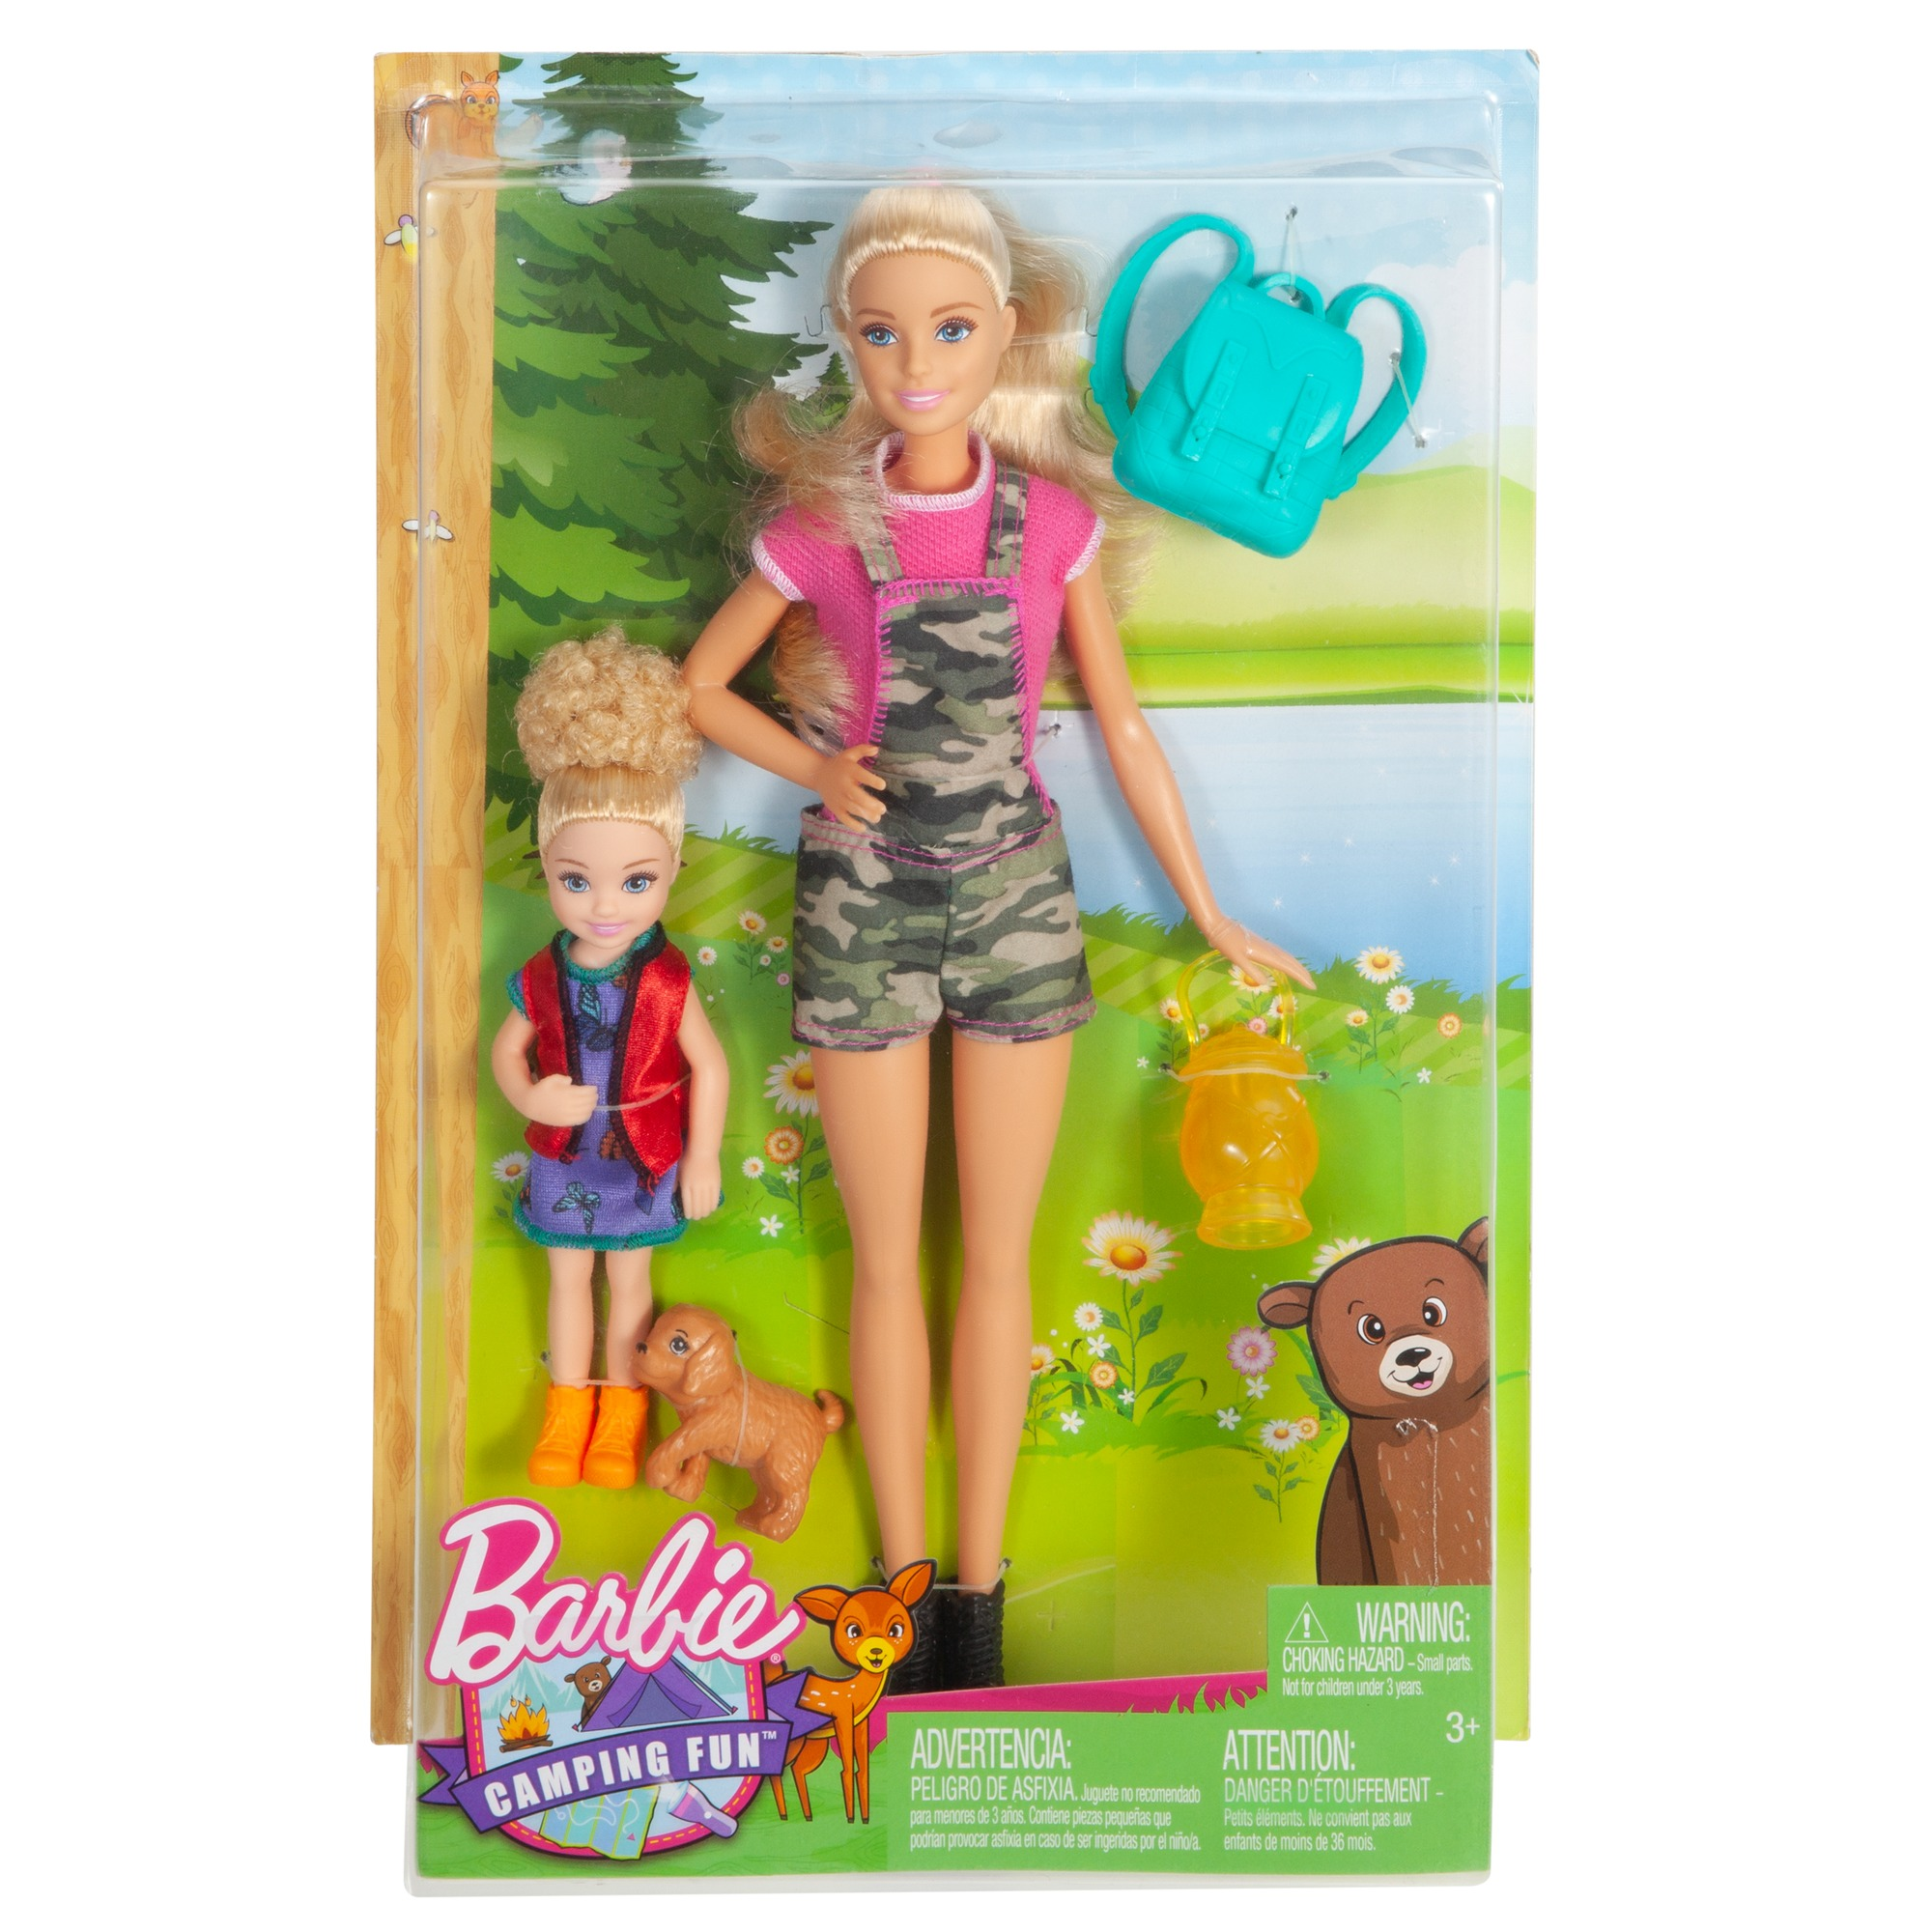 Camping Fun Sisters Barbie And Chelsea Dolls 2 Pack Down On The Farm